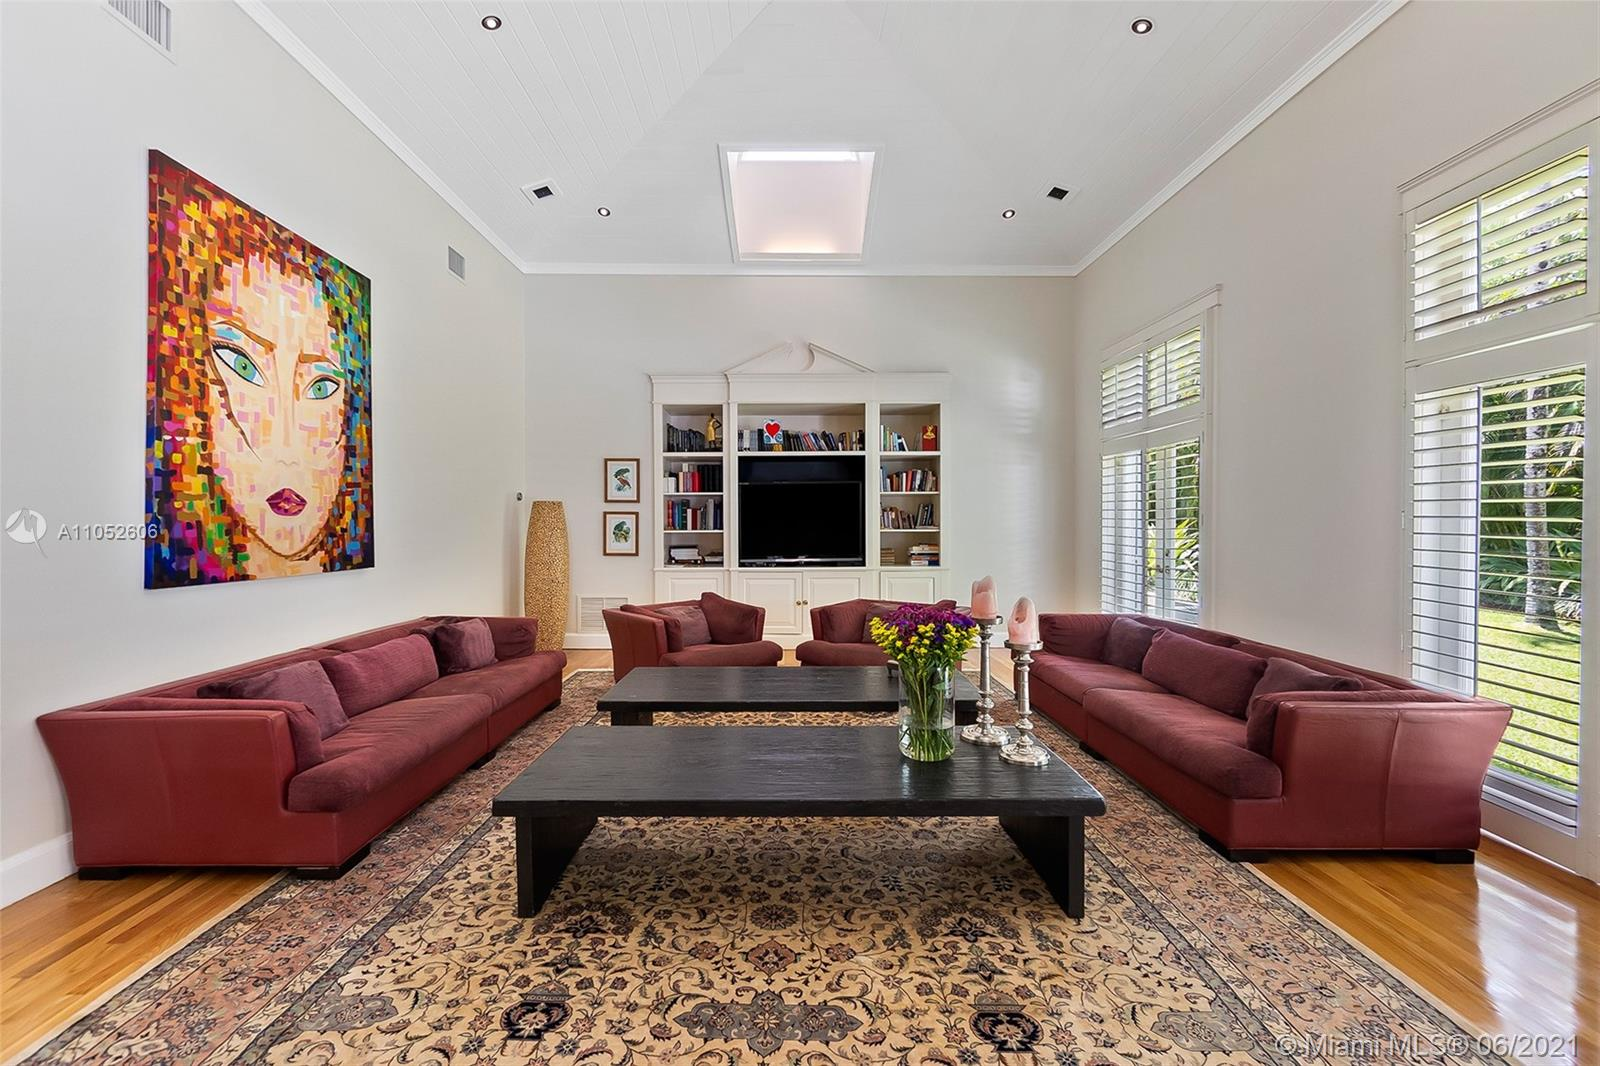 Located on a quiet cul-de-sac in Coral Gables near the Ponce-Davis area, this beautiful home is filled with natural light and understated elegance. The 5b/6b main house encompasses 8,000+sf and features formal living and dining rooms, spacious family room with high vaulted ceilings, customs built-ins, skylights, renovated kitchen with high-end appliances, impact windows and doors and oak flooring. Separate and newer 3b/2b guesthouse with kitchen is ideal for in-laws, grown children or staff. Outdoors the 38,000+sf lot is an oasis with palms, fruit trees and orchids incorporated throughout serving as the backdrop for a lavish pool surrounded by a stone patio perfect for family gatherings and entertaining. A three car garage and whole house generator complete this incredible offering.